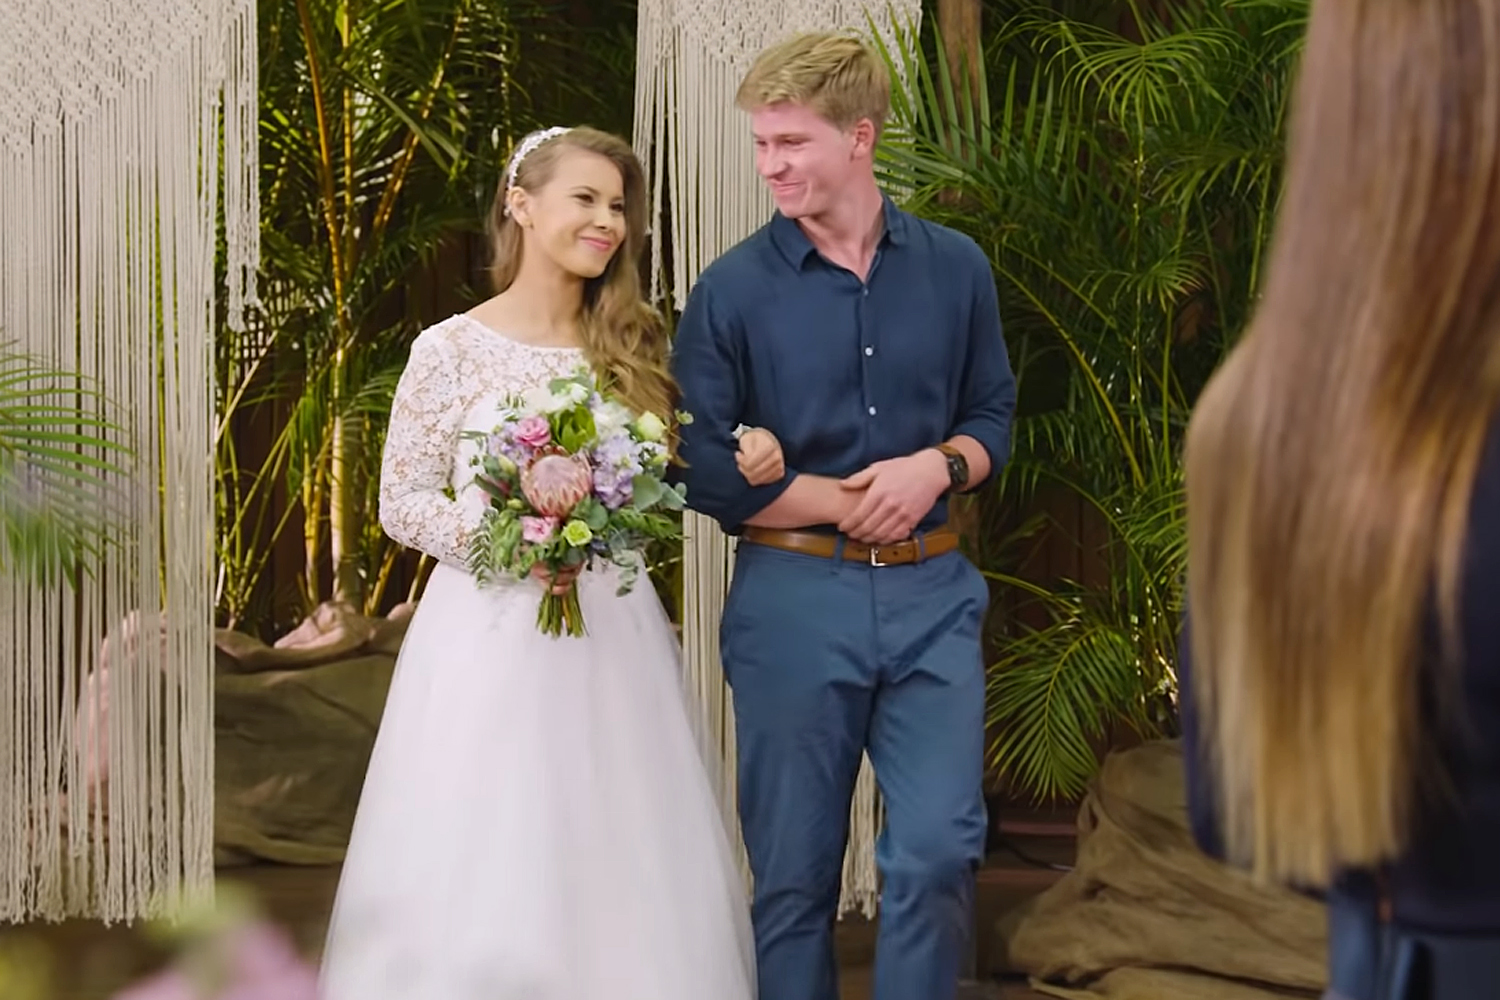 Robert Irwin Says Walking Sister Bindi Down the Aisle Was the 'Most Incredible Moment' of His Life